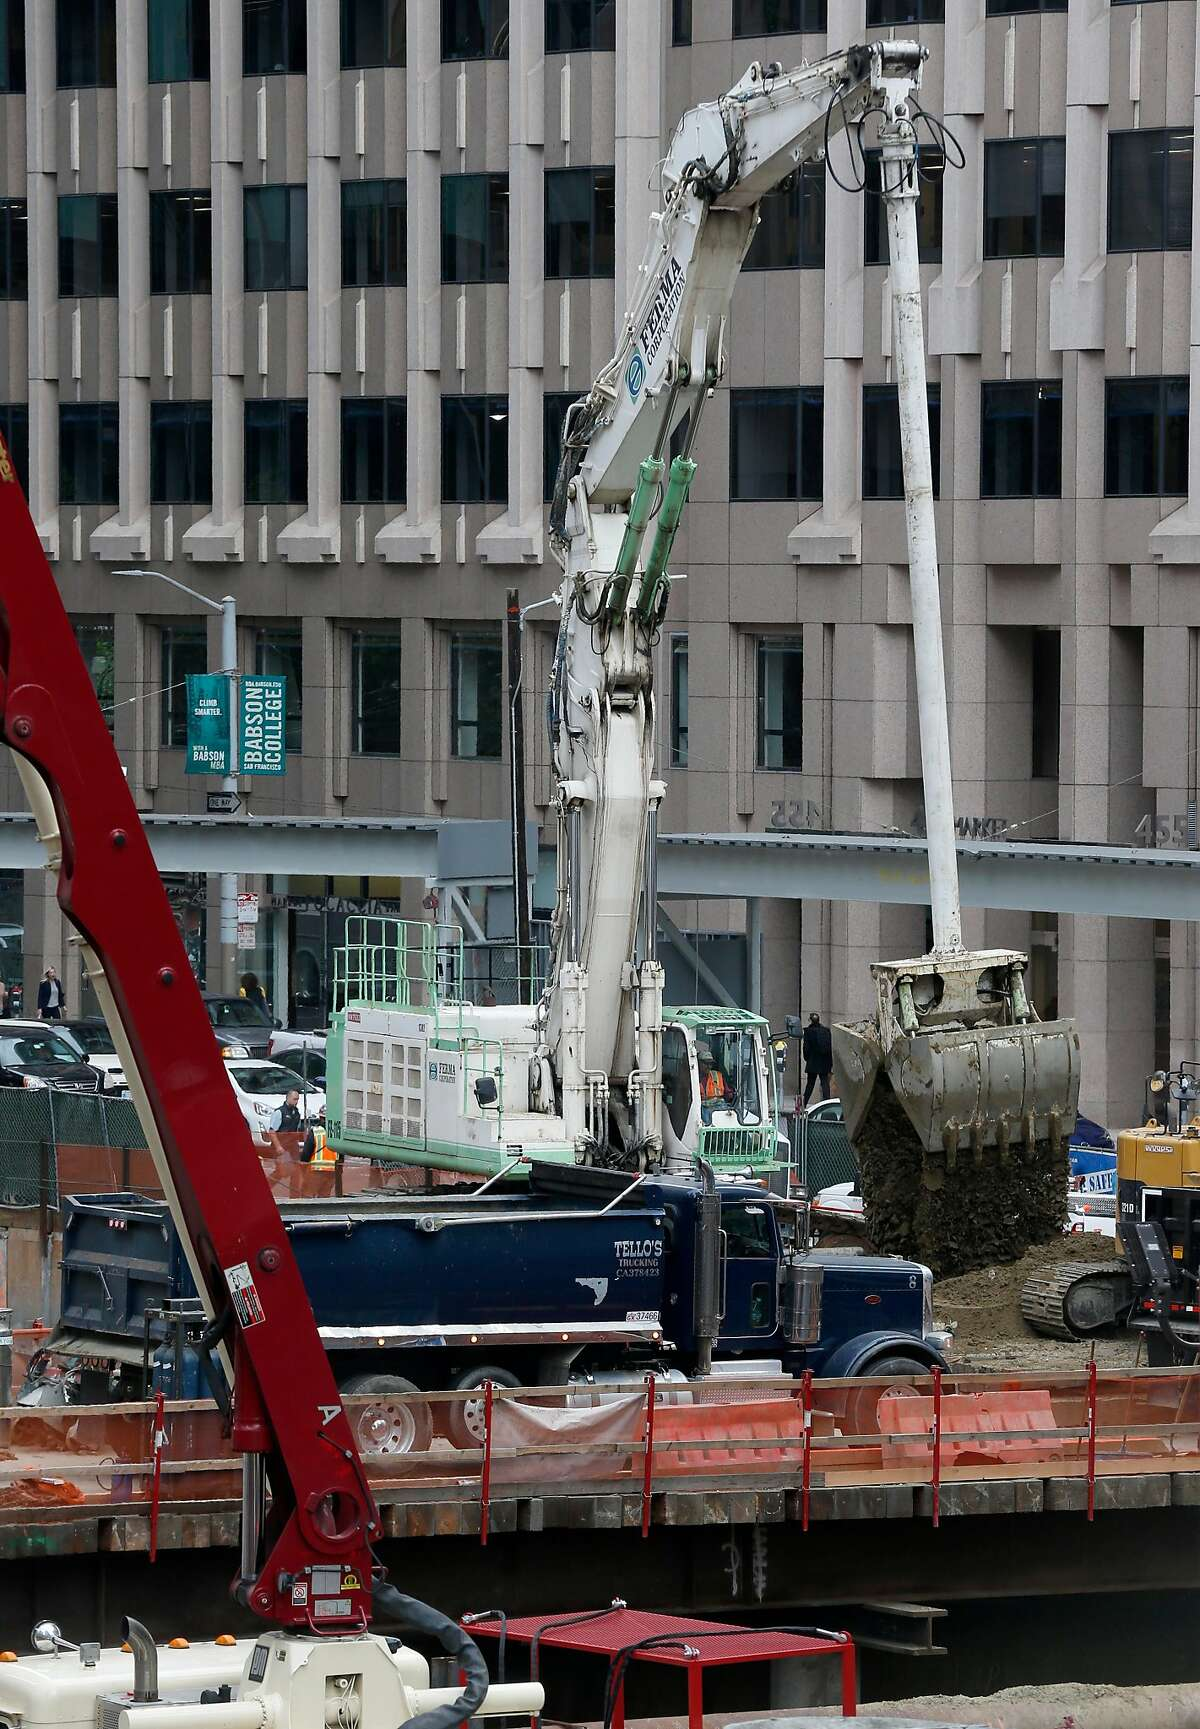 Construction of the Oceanwide Center office tower at First and Mission streets continues in San Francisco, Calif. on Tuesday, May 7, 2019.